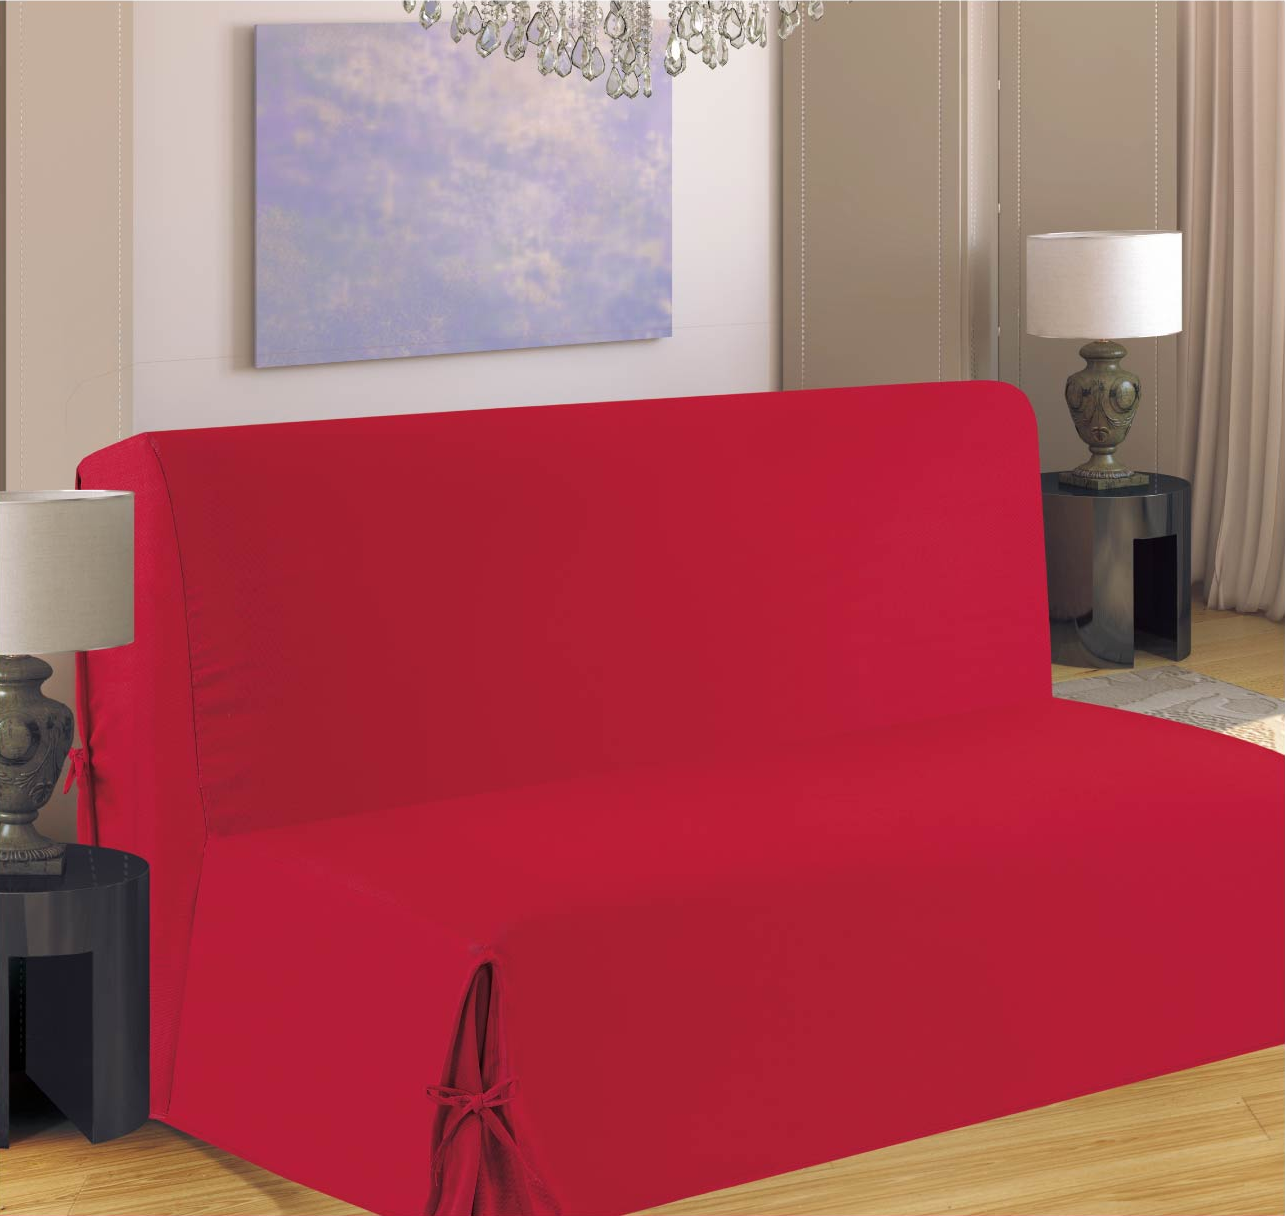 housse de clic clac nouettes rouge rouge homemaison vente en ligne housses de clic clac. Black Bedroom Furniture Sets. Home Design Ideas